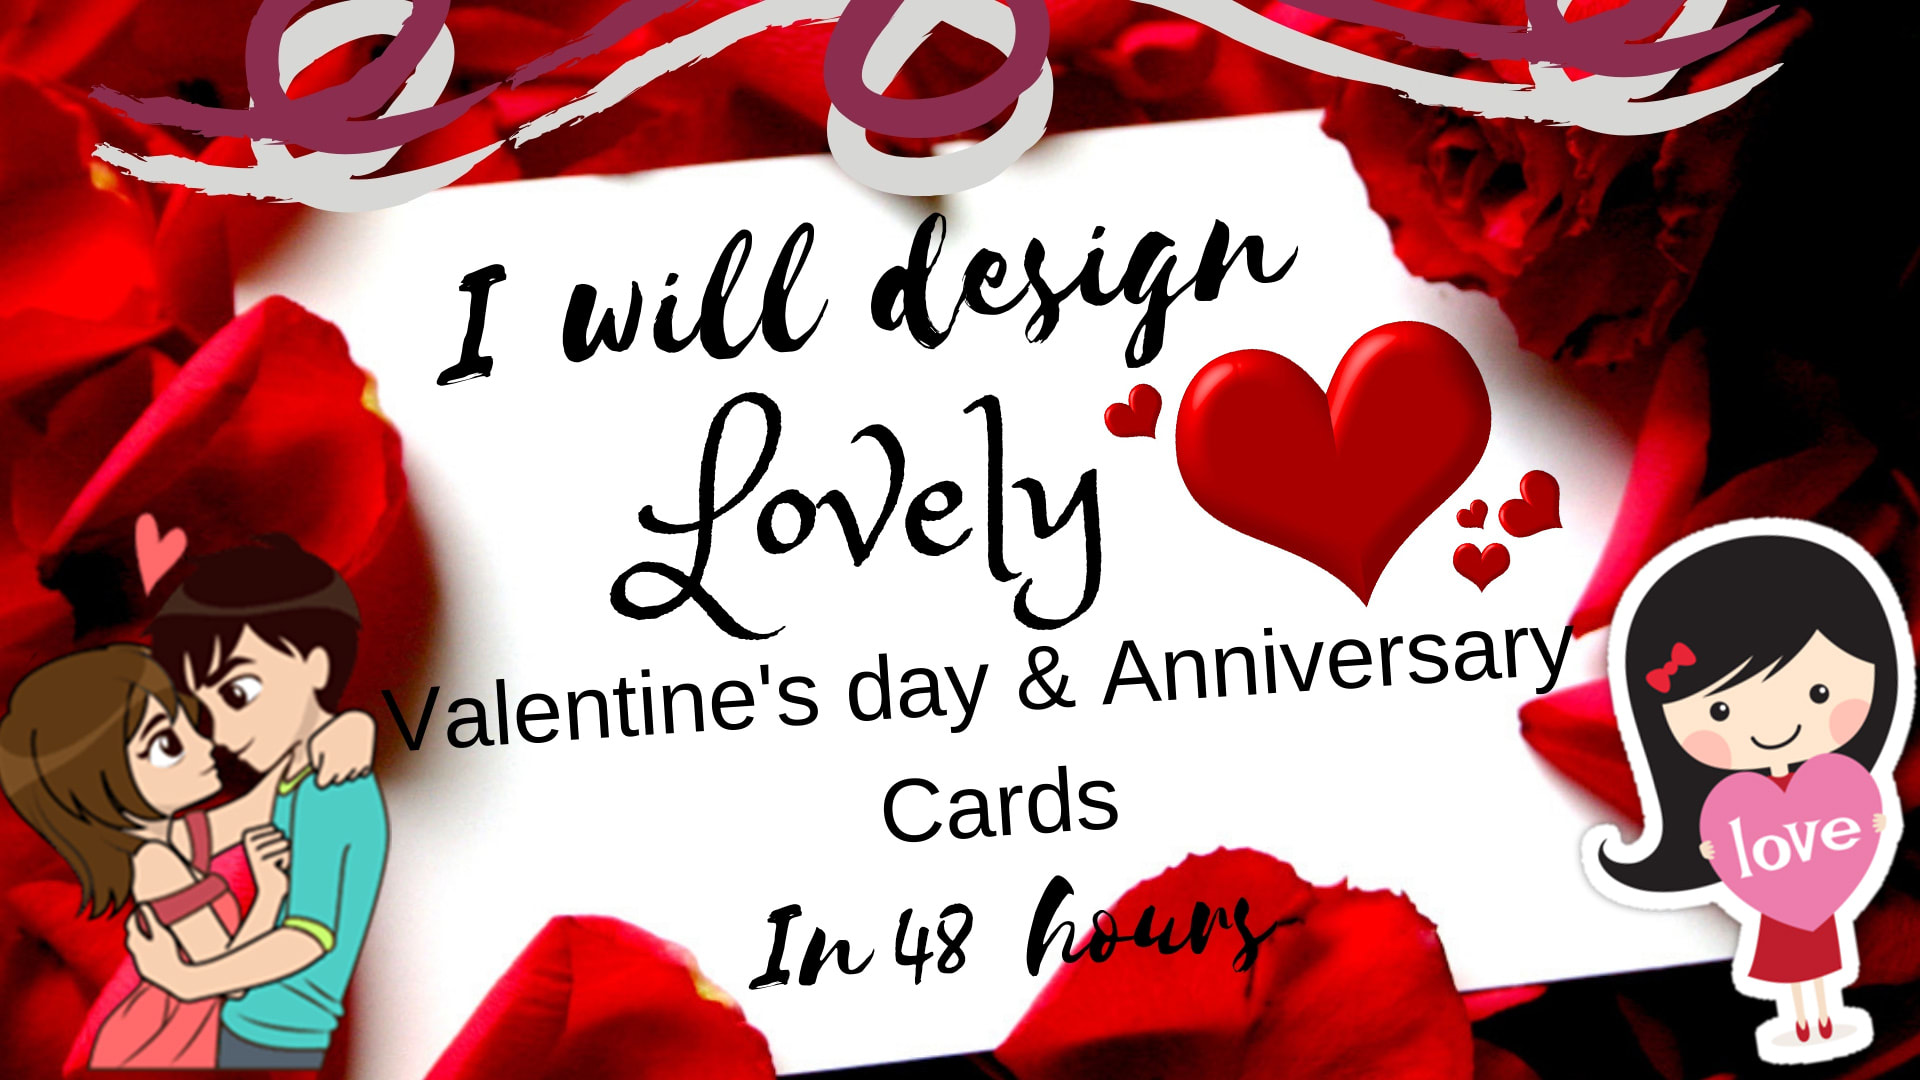 Design lovely valentine and anniversary cards in 48 hours by Ishues